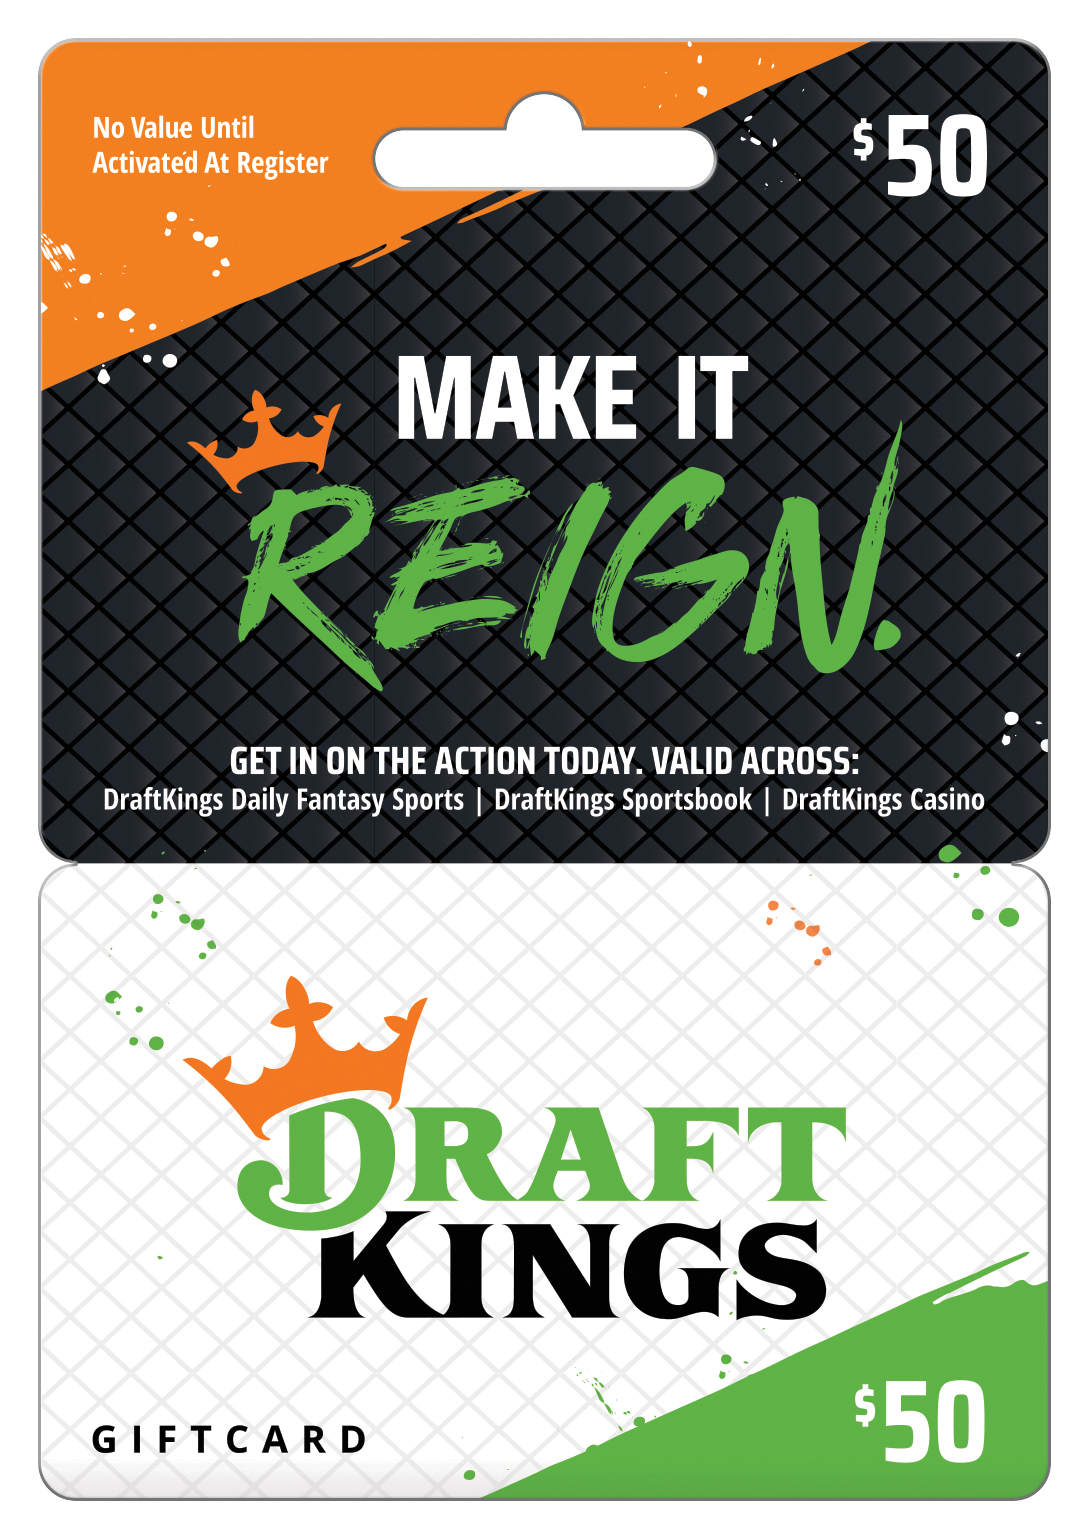 C2950_543_Draft_Kings_M6_50_062220.png